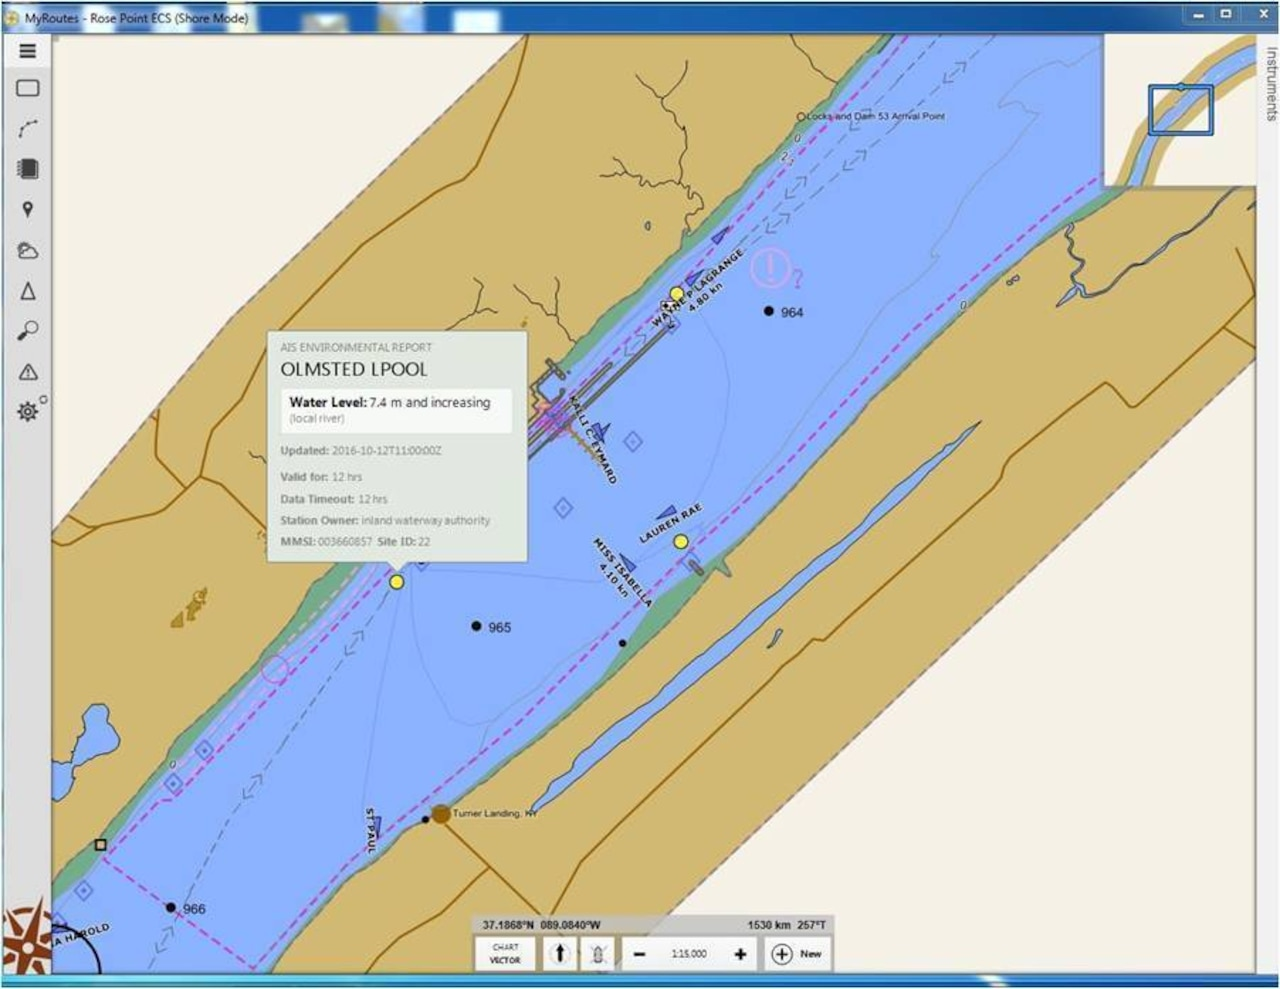 A screen from a commercial Electronic Chart System shows both electronic Aids to Navigation and enhanced Marine Safety Information in the vicinity of the Olmsted Lock near Olmsted, Ill. Coast Guard graphic